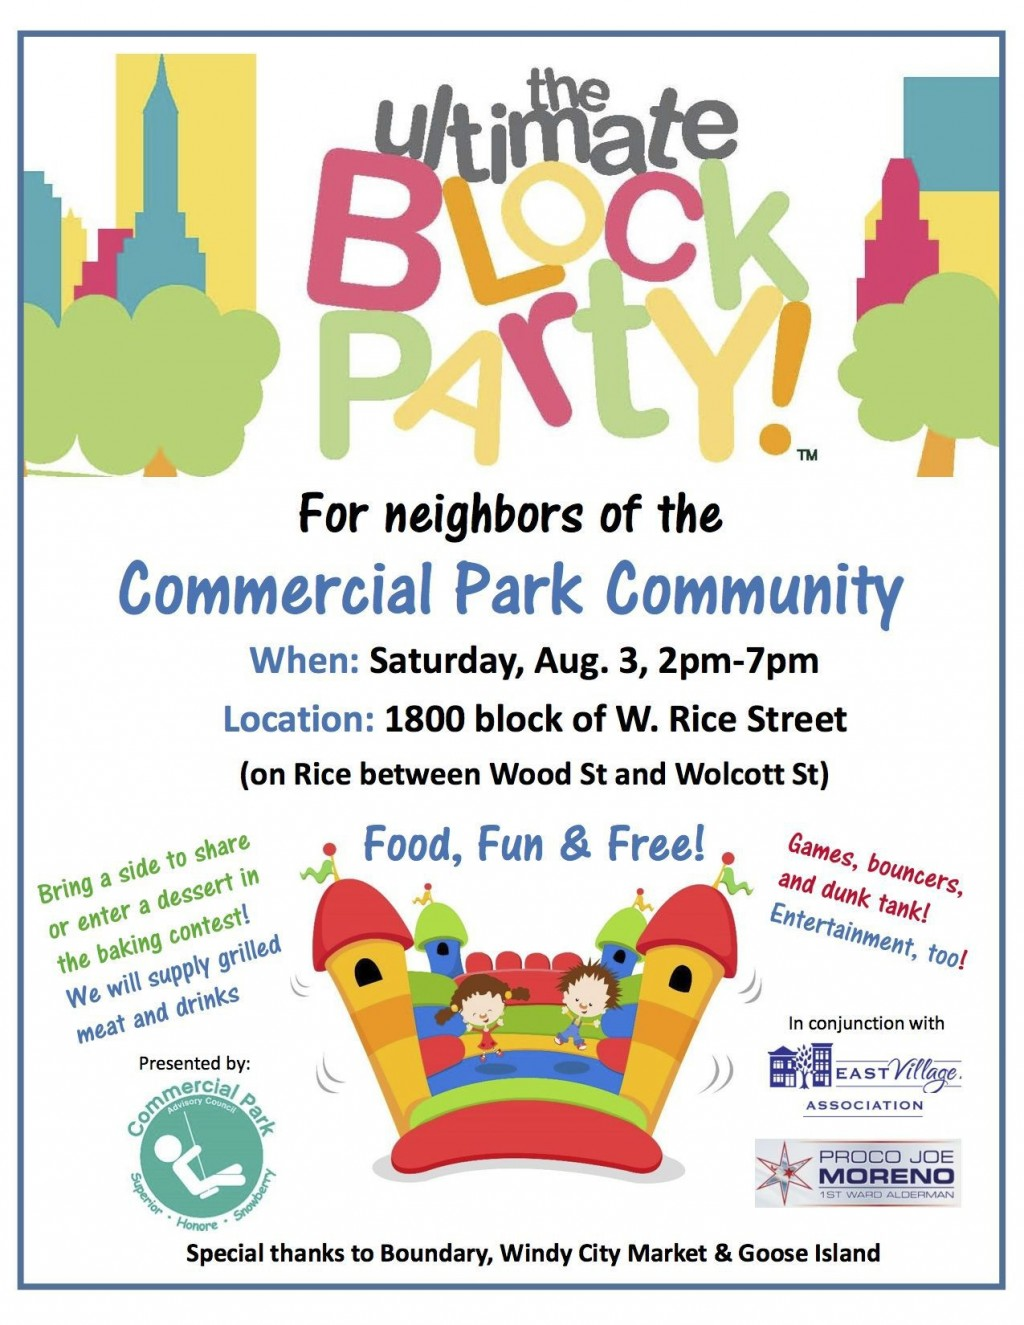 004 Awful Block Party Flyer Template Sample  Templates FreeLarge